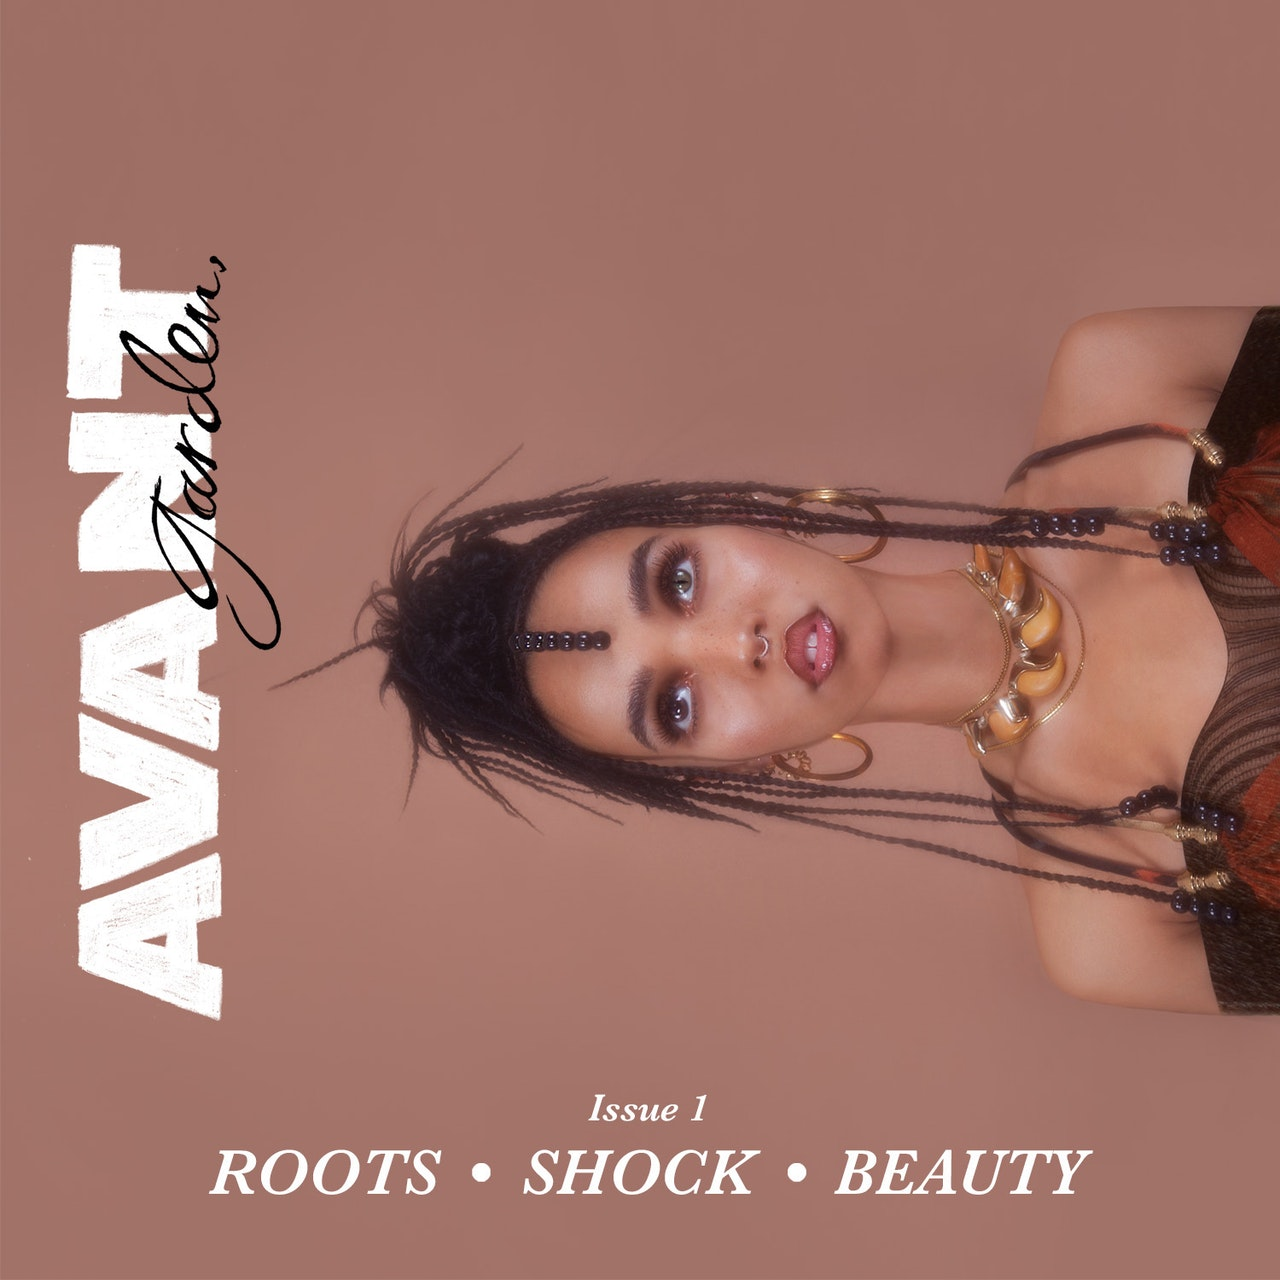 FKA twigs AVANTgarden issue 1